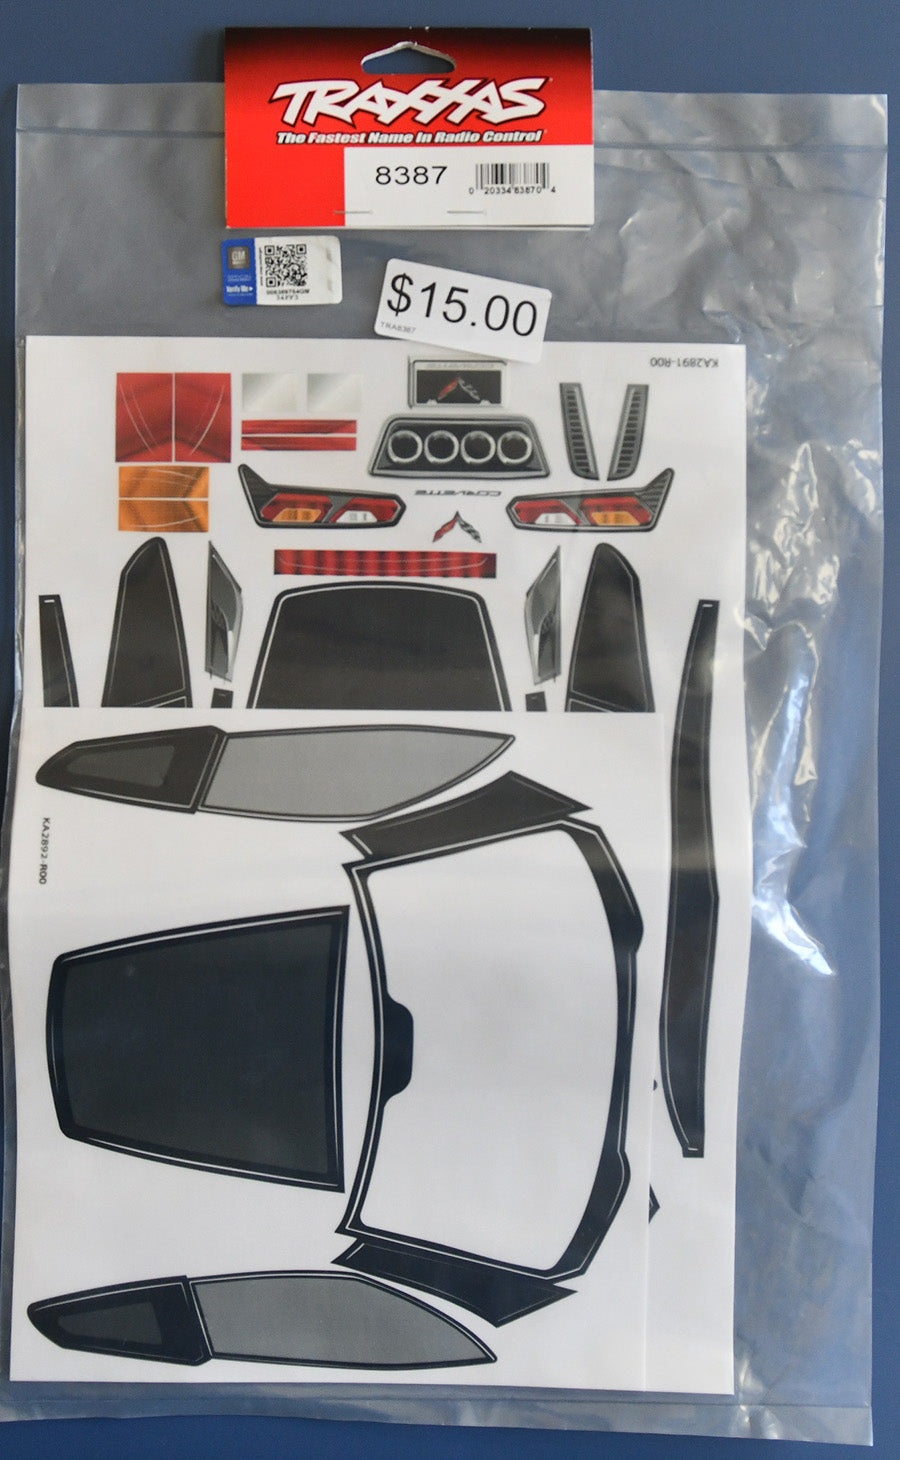 Traxxas Decal Sheets, Chevrolet Corvette Z06 TRA8387